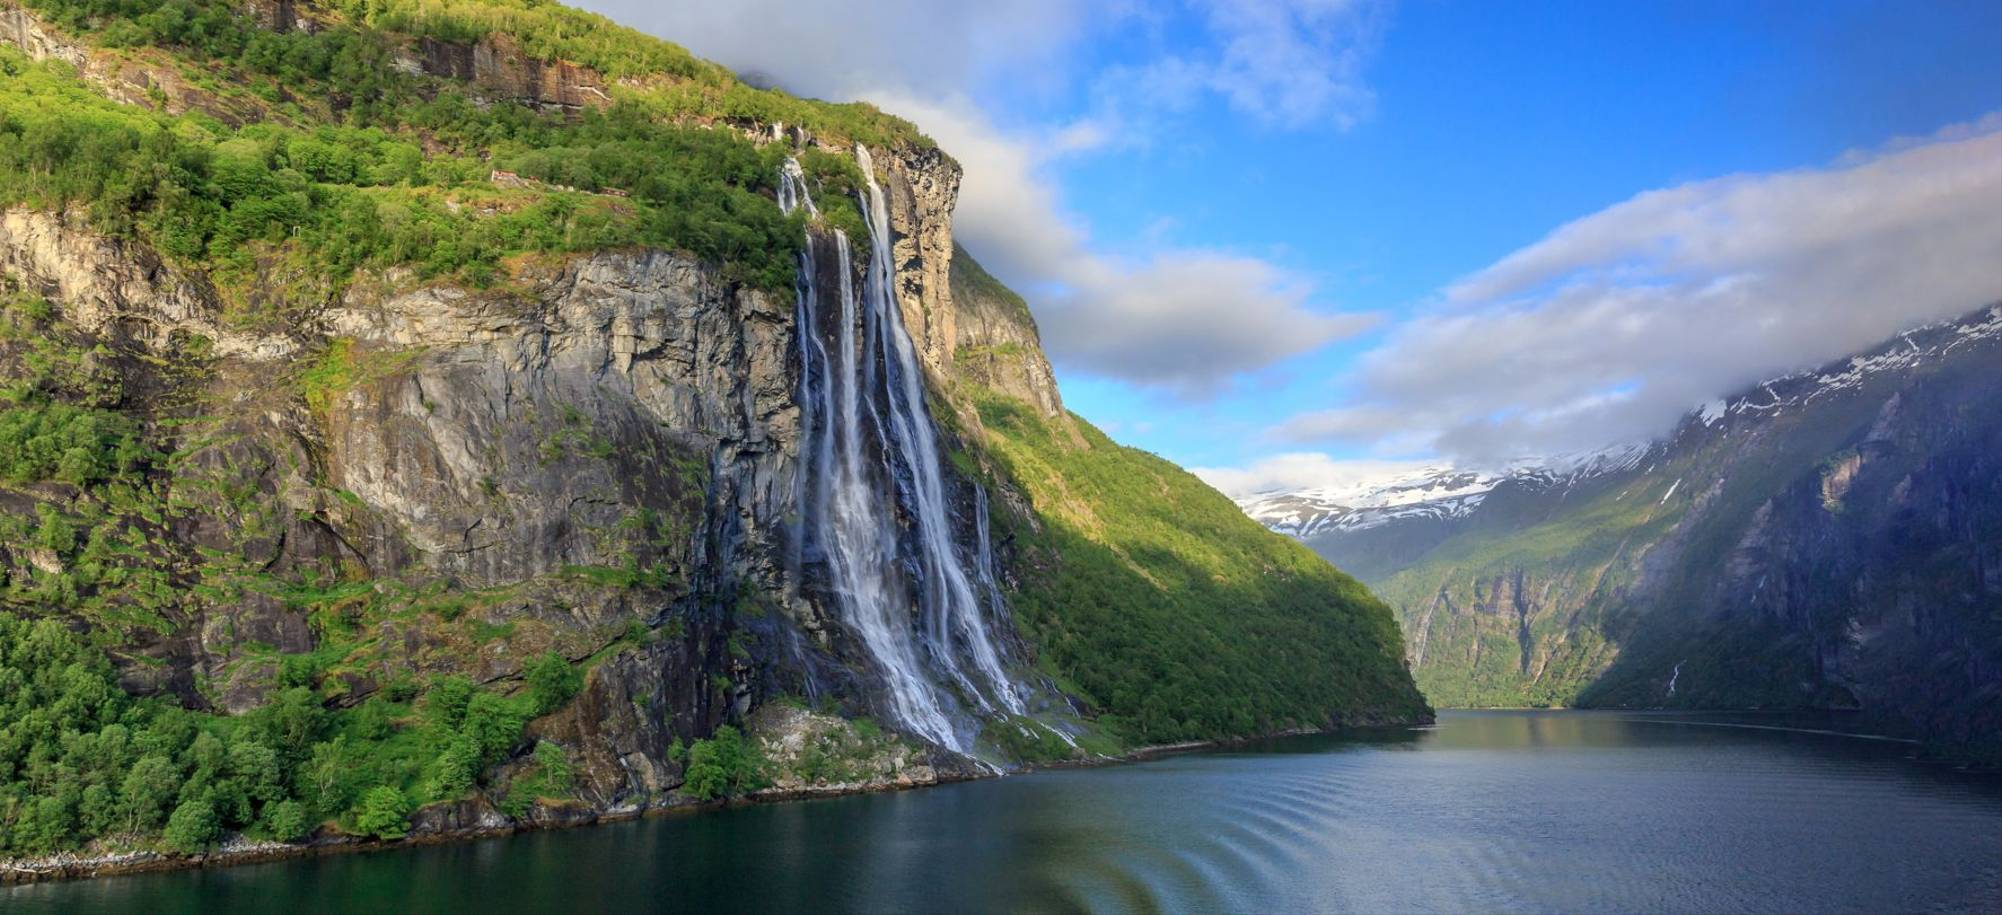 Geiranger   Seven Sisters Waterfall   Itinerary Desktop